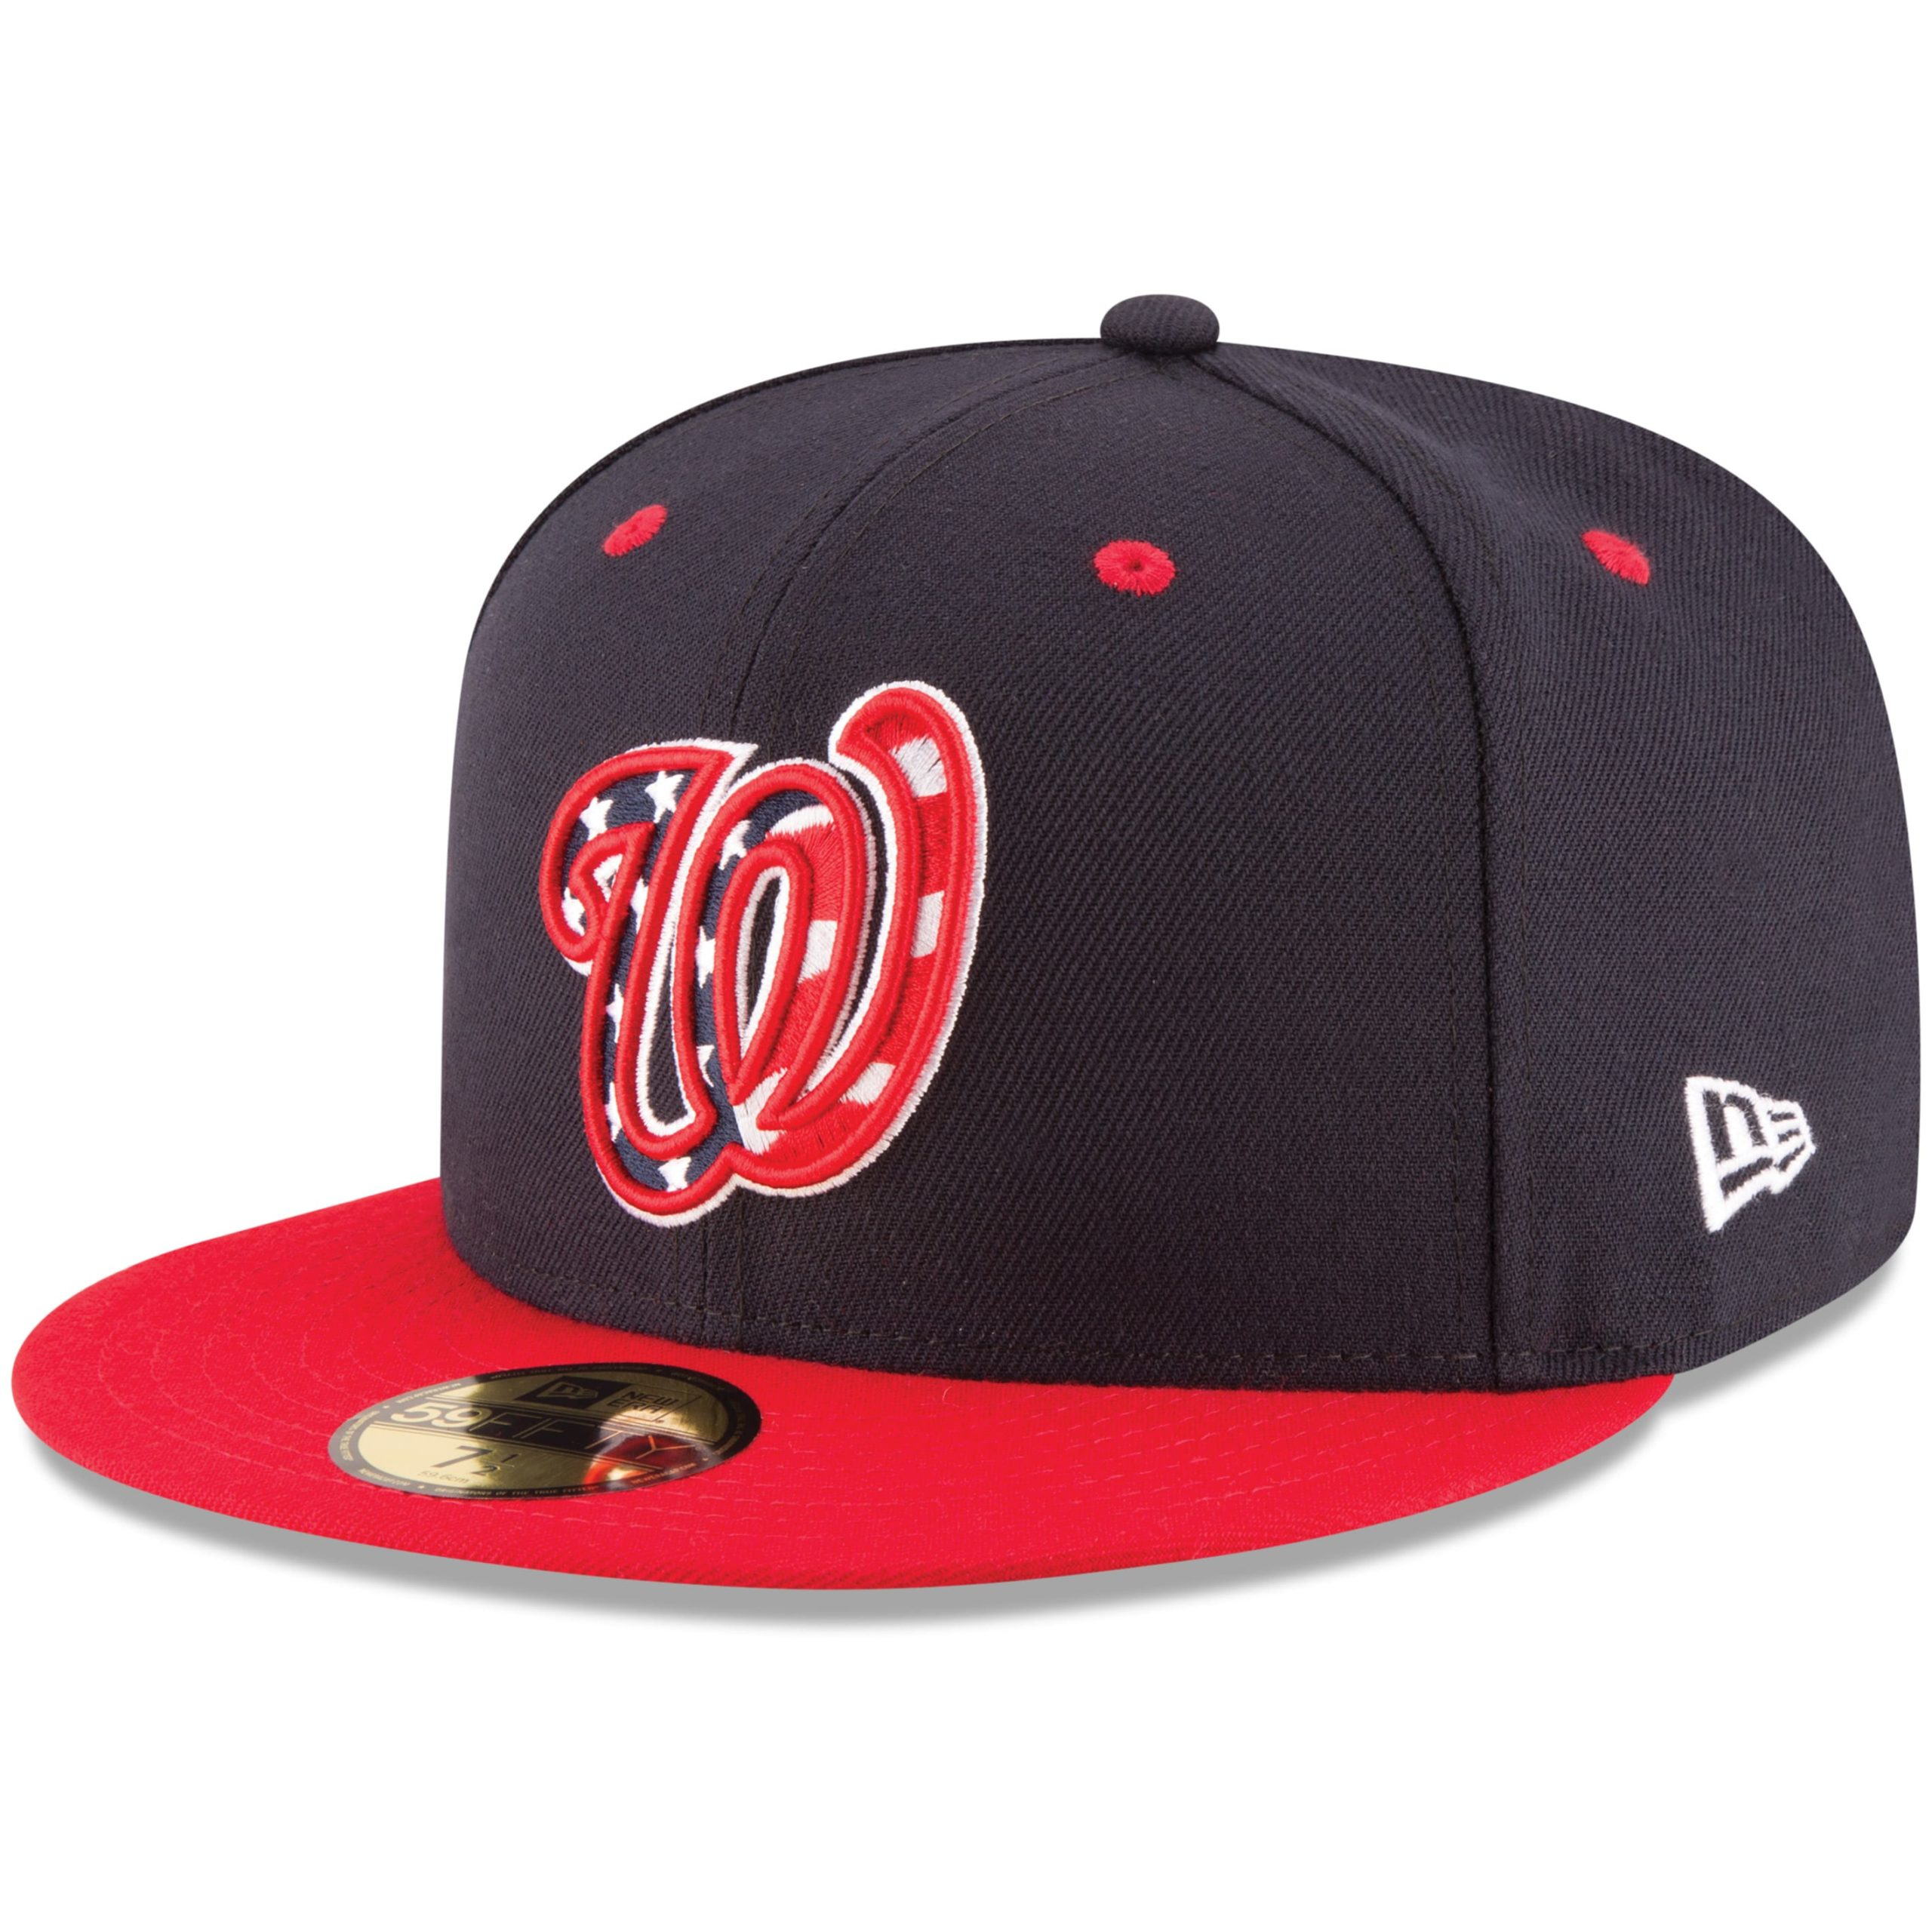 Washington Nationals New Era Alternate Authentic Collection On-Field 59FIFTY Fitted Hat - Navy/Red